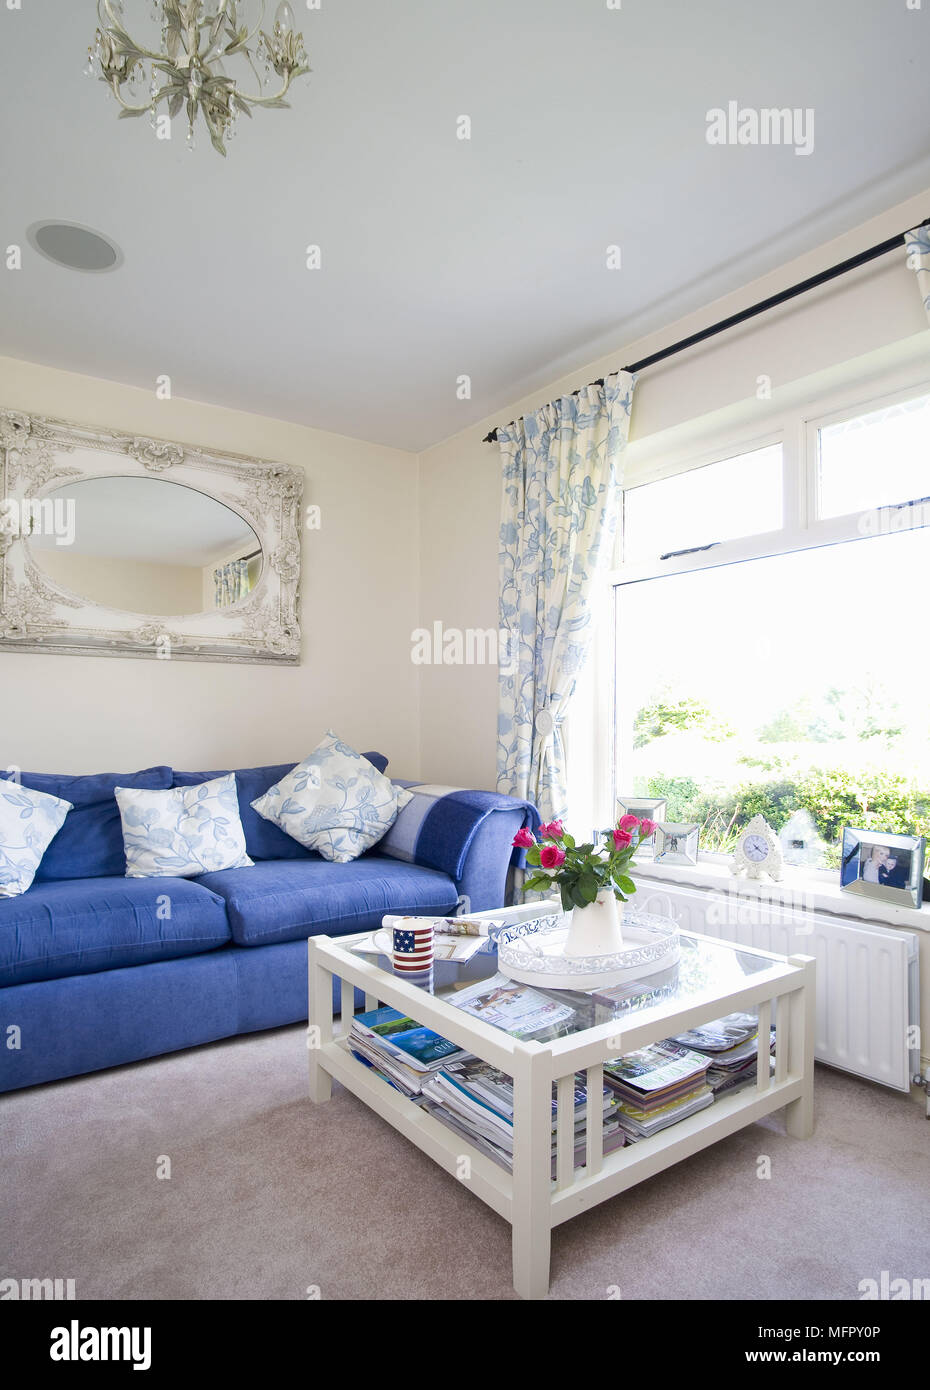 Coffee Table In Front Of Blue Sofa In Traditional Style Sitting Room Stock Photo Alamy